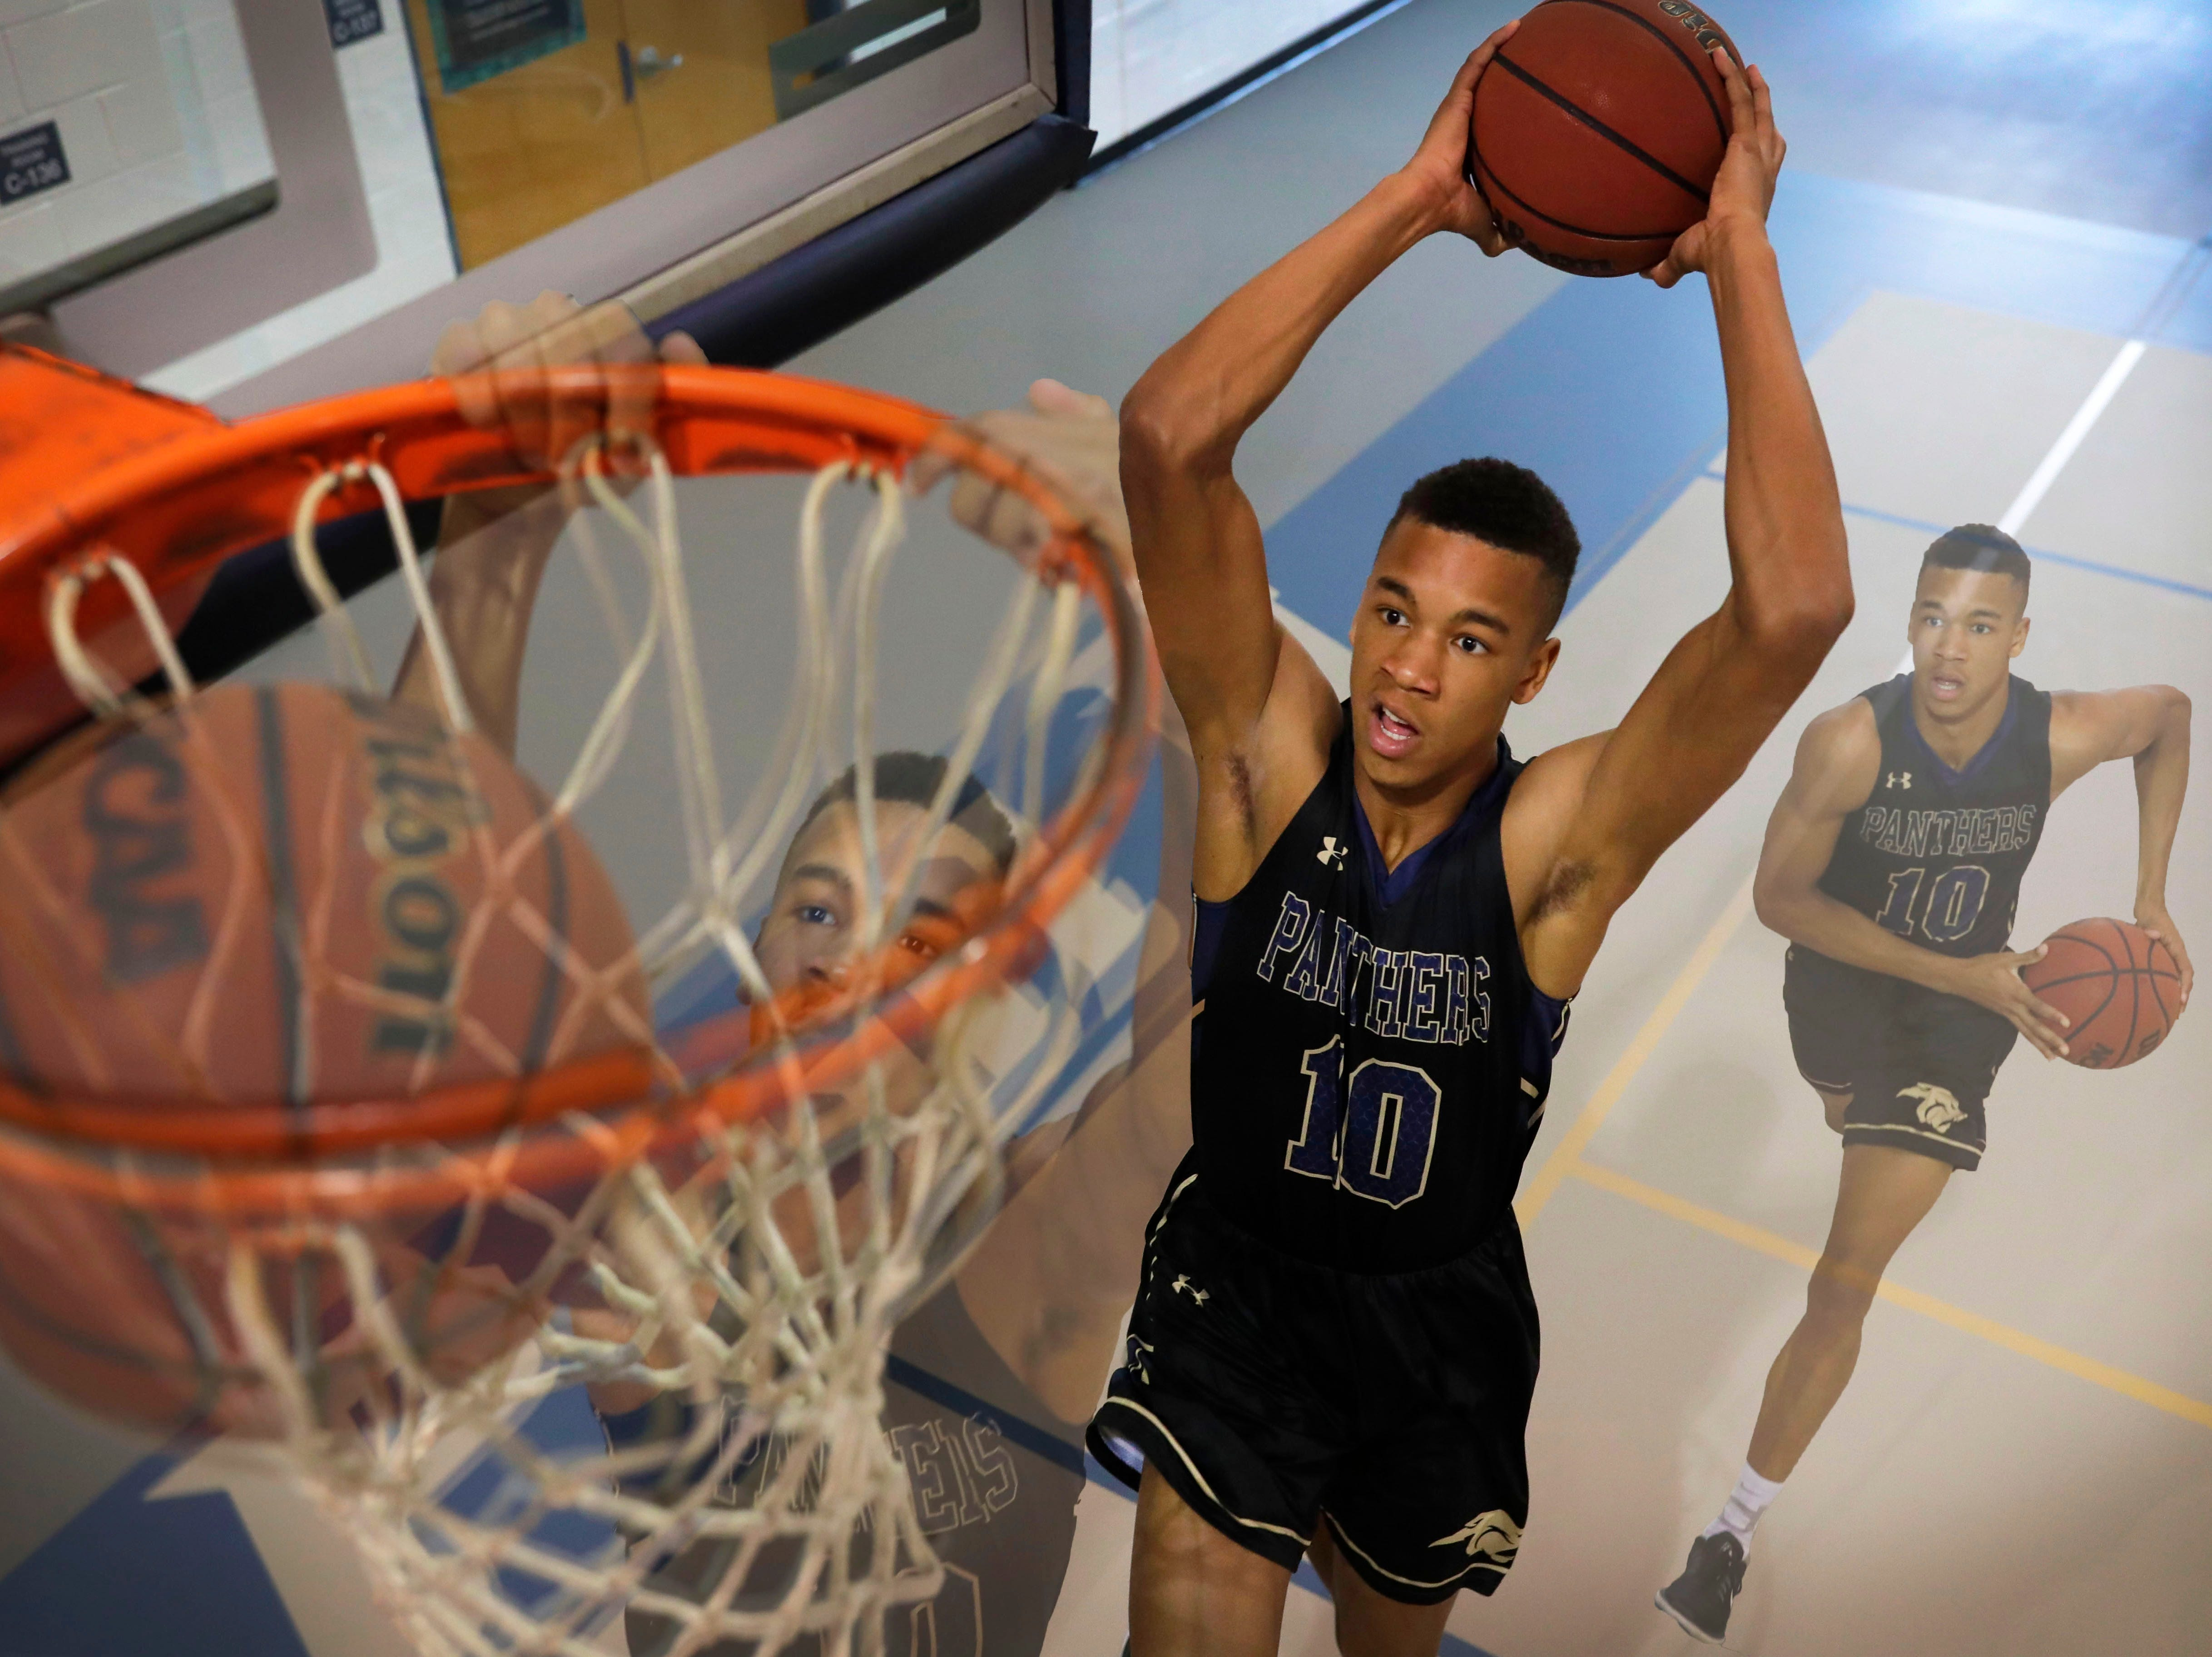 St. John Paul II senior guard Allan Jeanne-Rose is the 2019 All-Big Bend Player of the Year in boys basketball after averaging 17.5 points and 7.7 rebounds per game during the Panthers' 28-5 season that culminated in a Class 3A state championship. In the championship game, Jeanne-Rose dunked home the winning basket in the final seconds of overtime to beat Orlando Christian Prep, which also got him on SportsCenter's top 10 highlights.